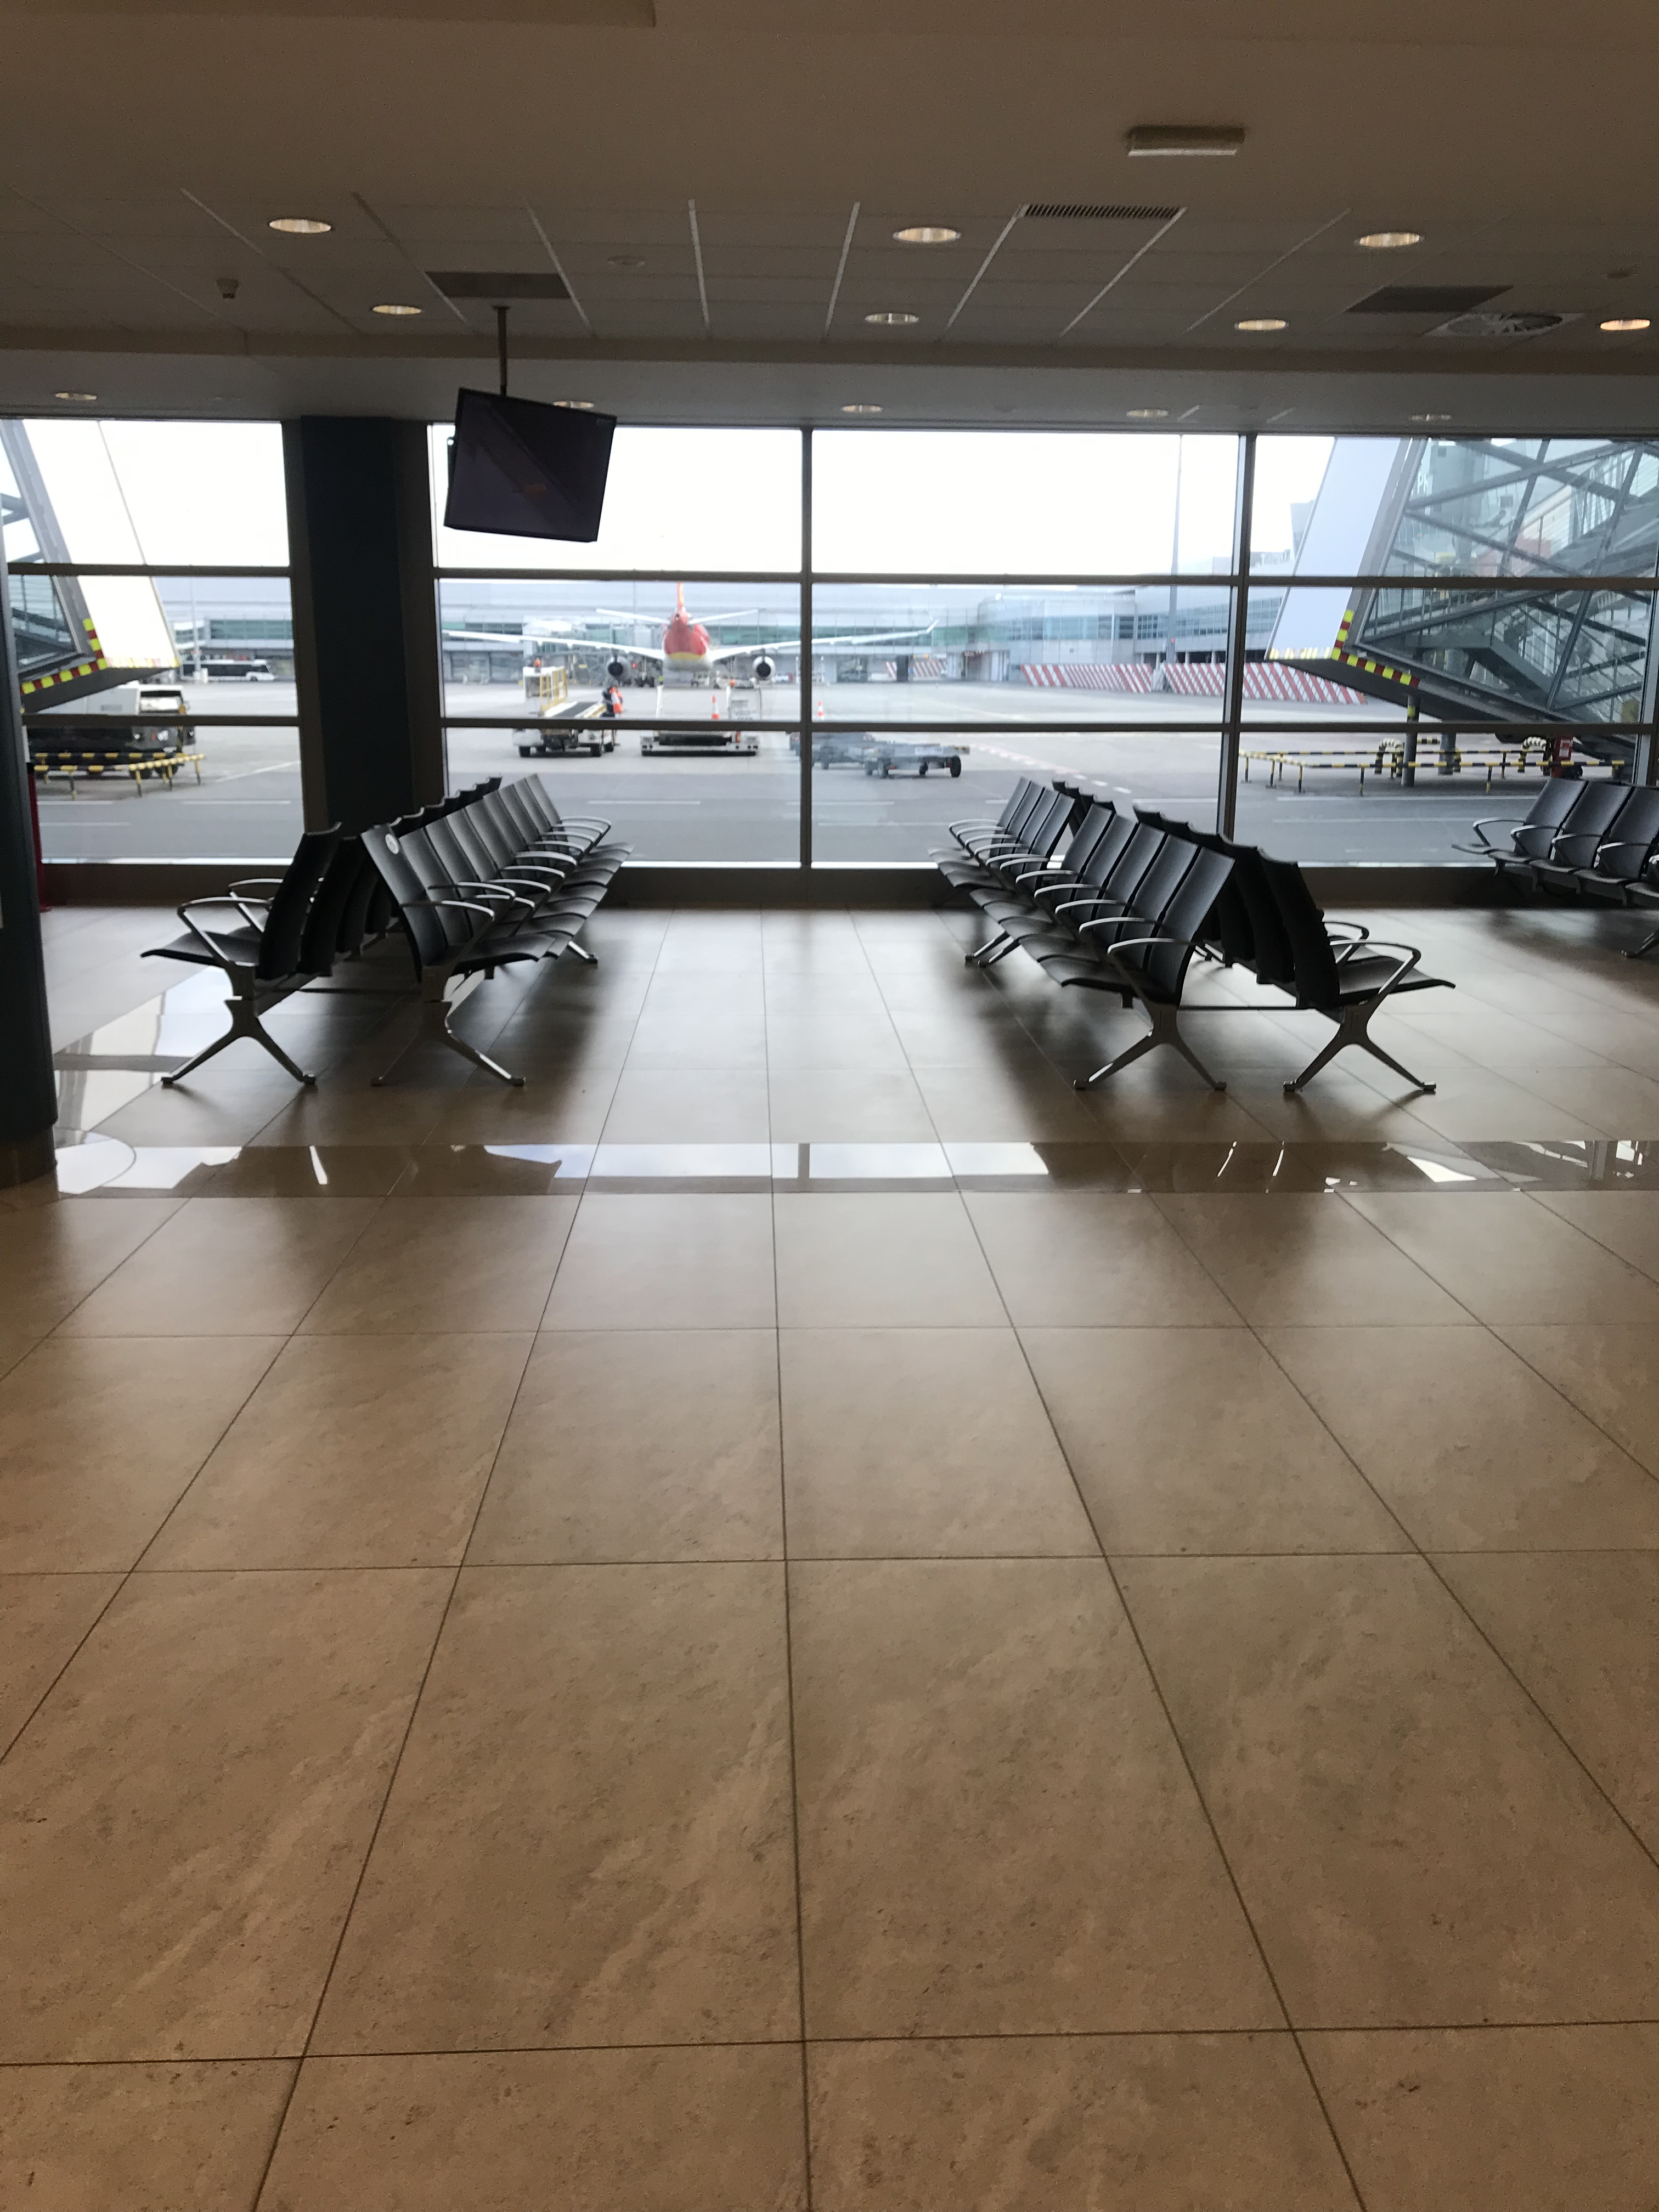 Prague Tips - The waiting area at the gates of the Prague Airport